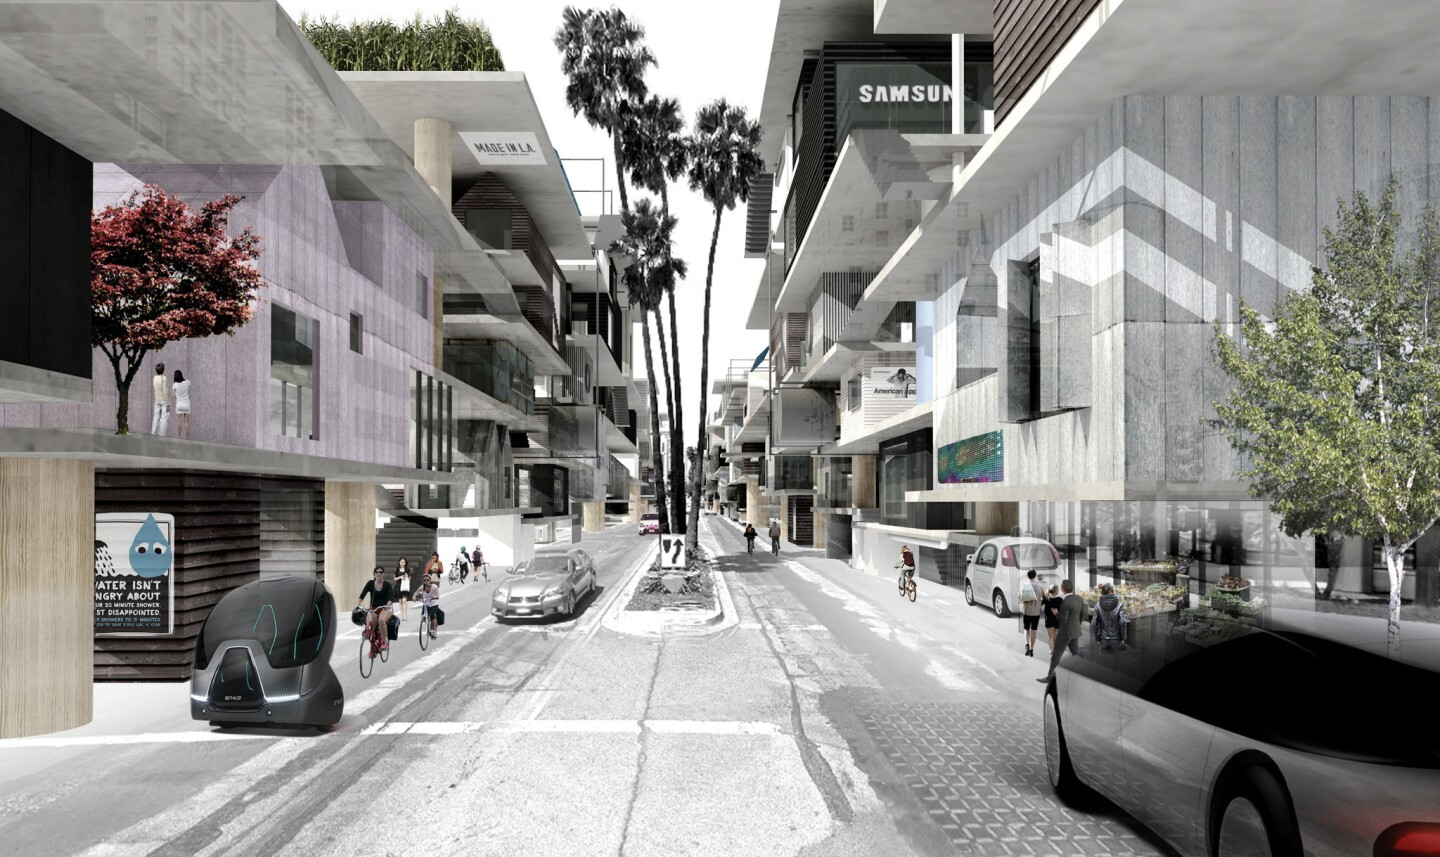 Architects show a range of ideas for the future L.A. at the A+D Museum's exhibition 'Shelter.' Kulapat Yantrasast and the team at wHY Architecture presented a concept called 'Unfolding Wilshire,' in which they added ribbons of multi-level structures to the city's famed thoroughfare.